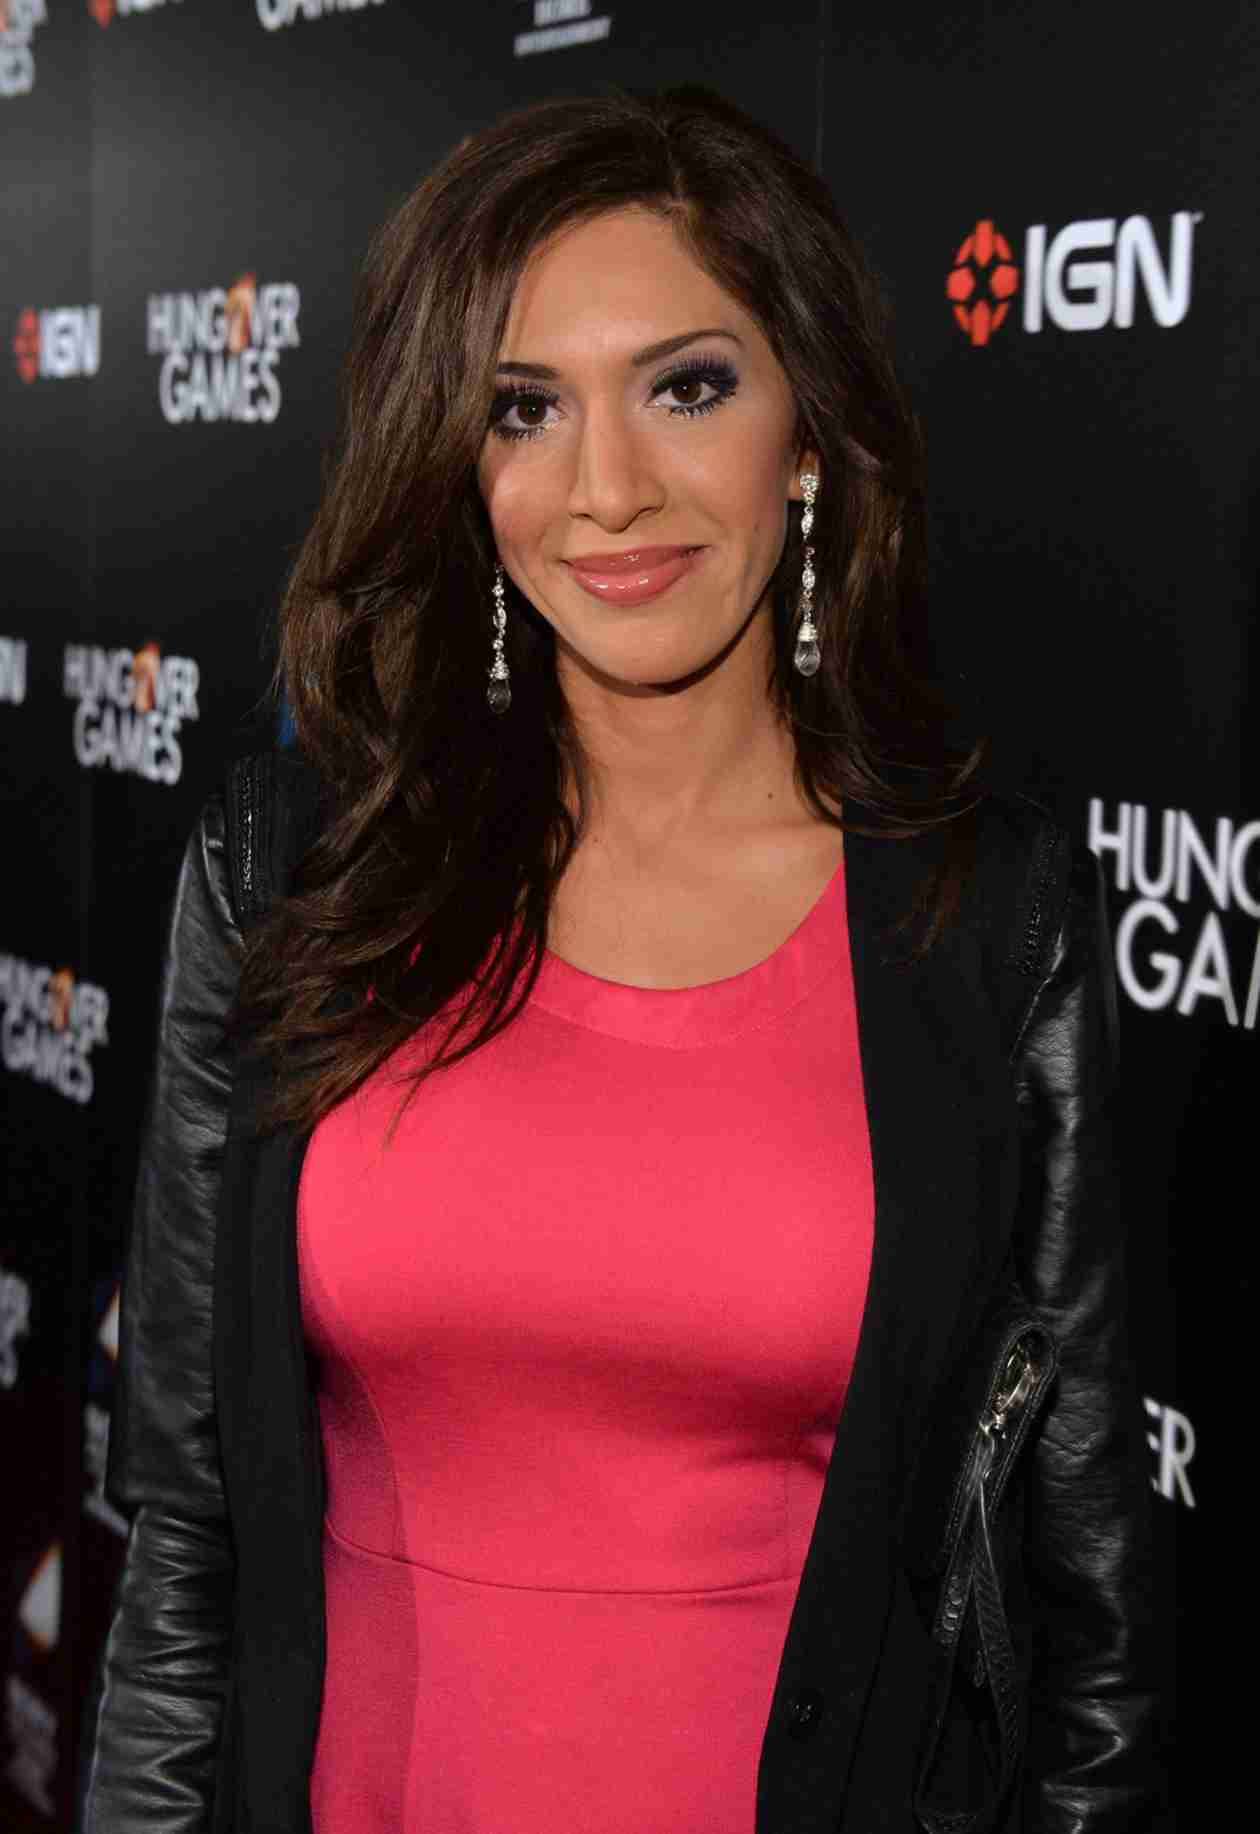 Farrah Abraham Wants to Switch Careers to Which Very Old Profession?